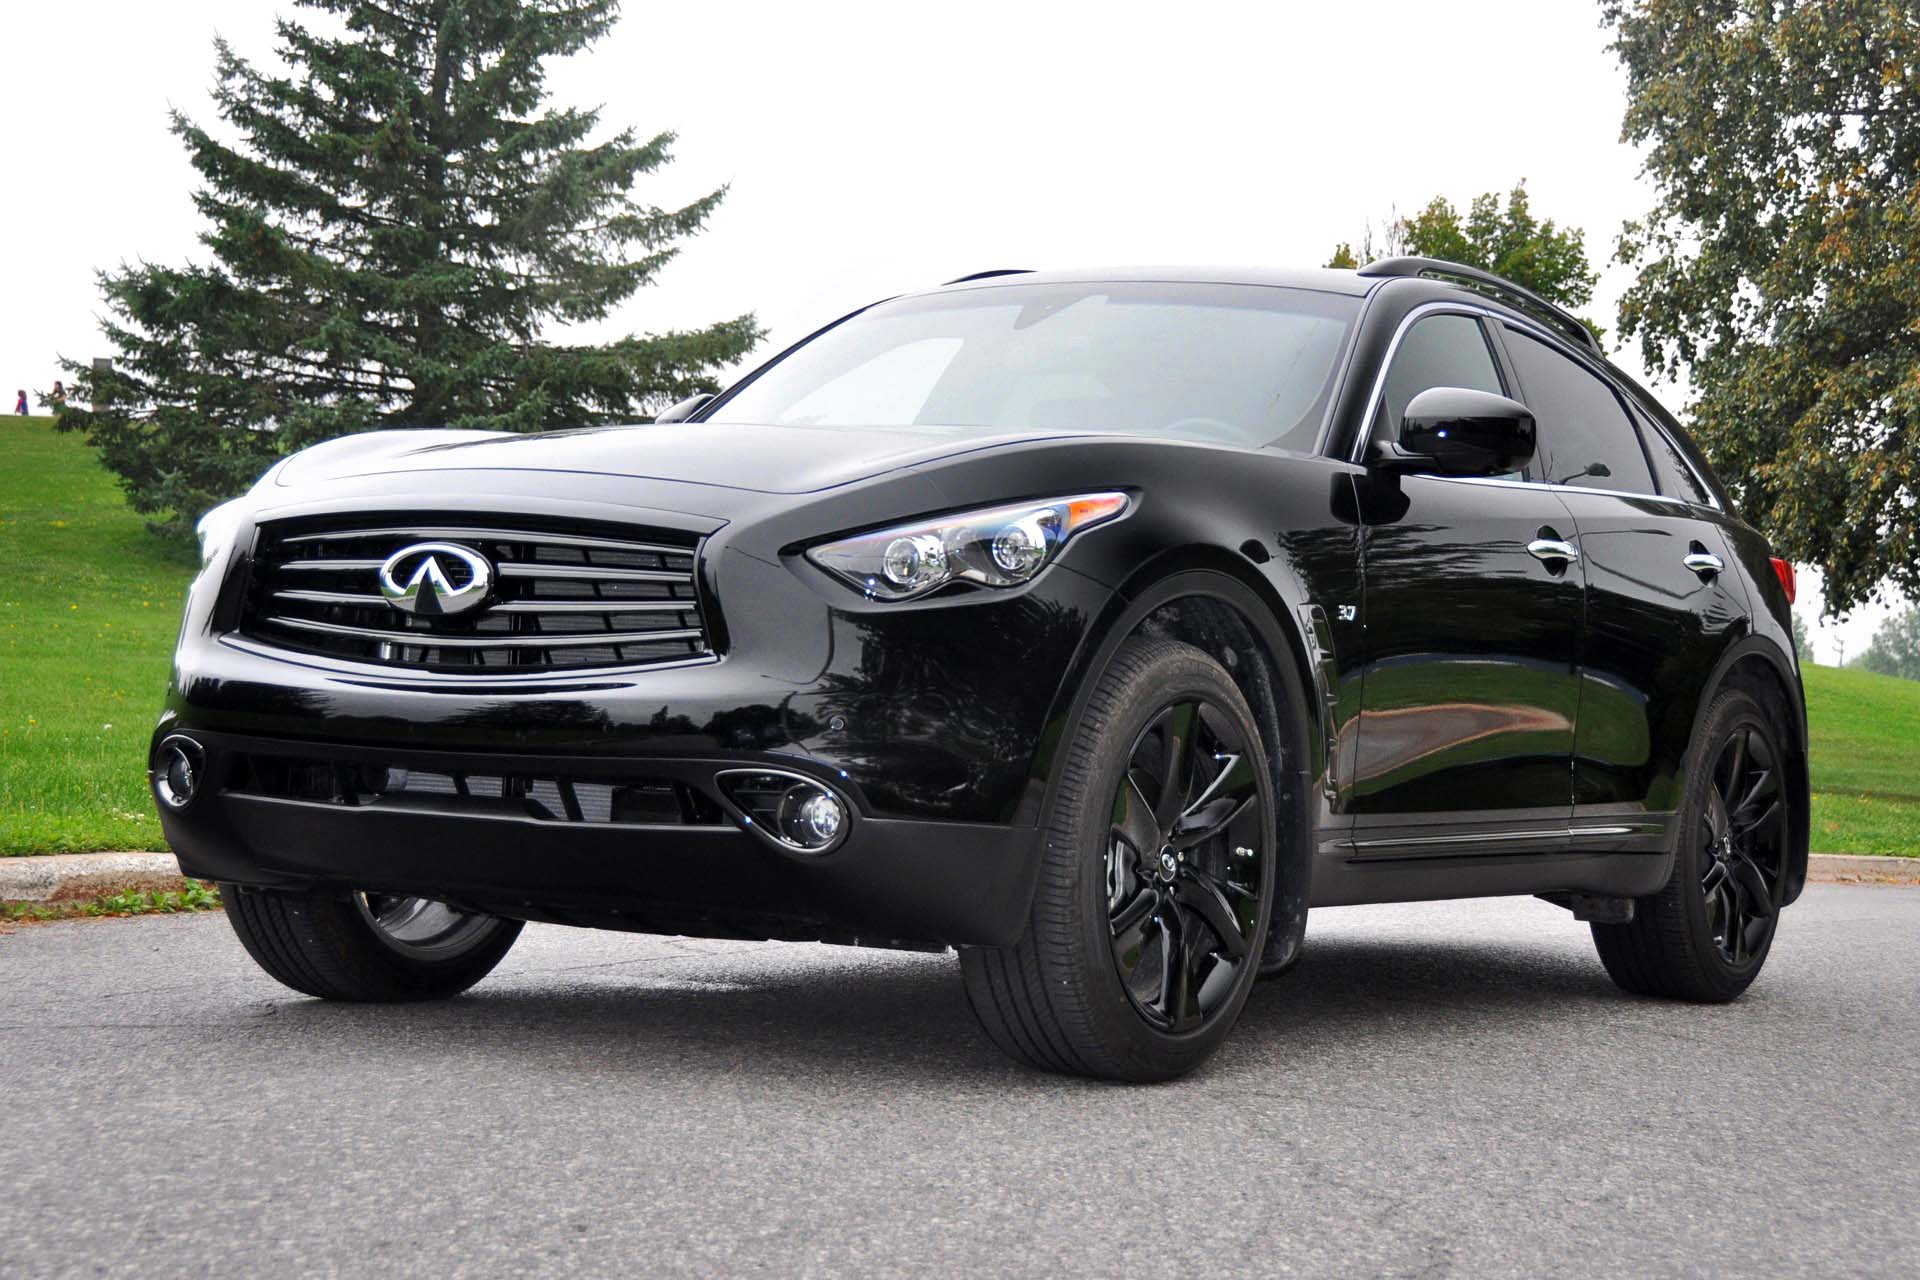 test drive 2016 infiniti qx70s. Black Bedroom Furniture Sets. Home Design Ideas